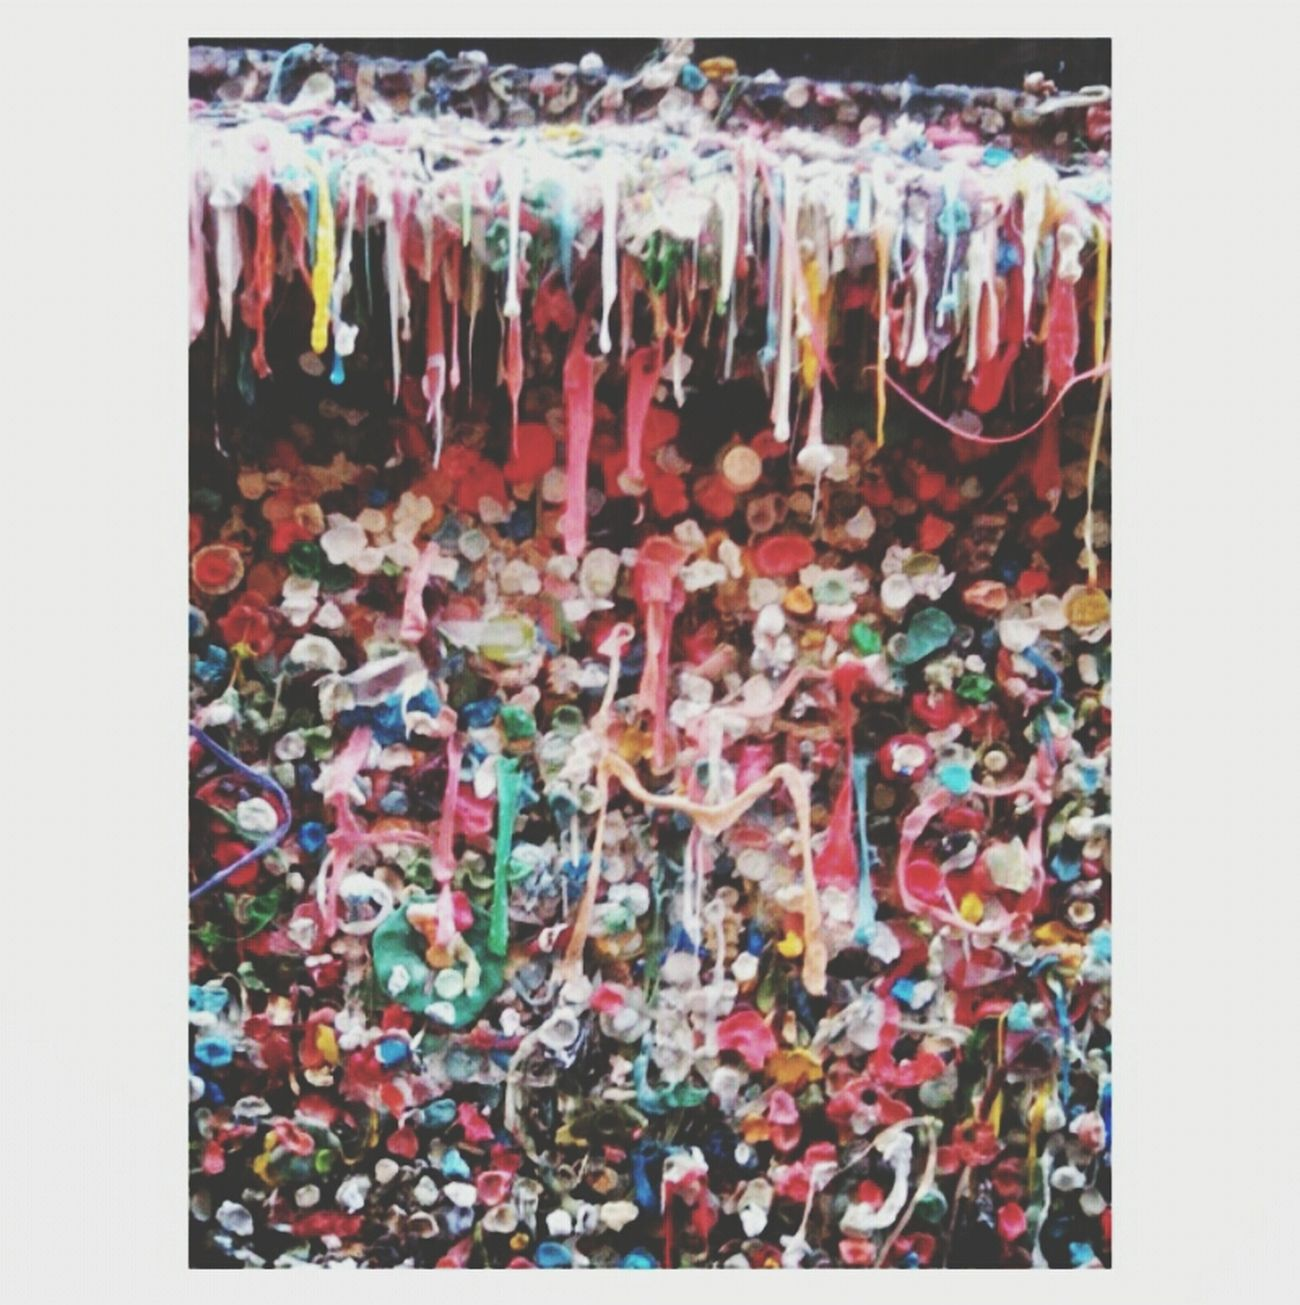 口香糖牆 Gum Wall Cool Start A Trip Seattle